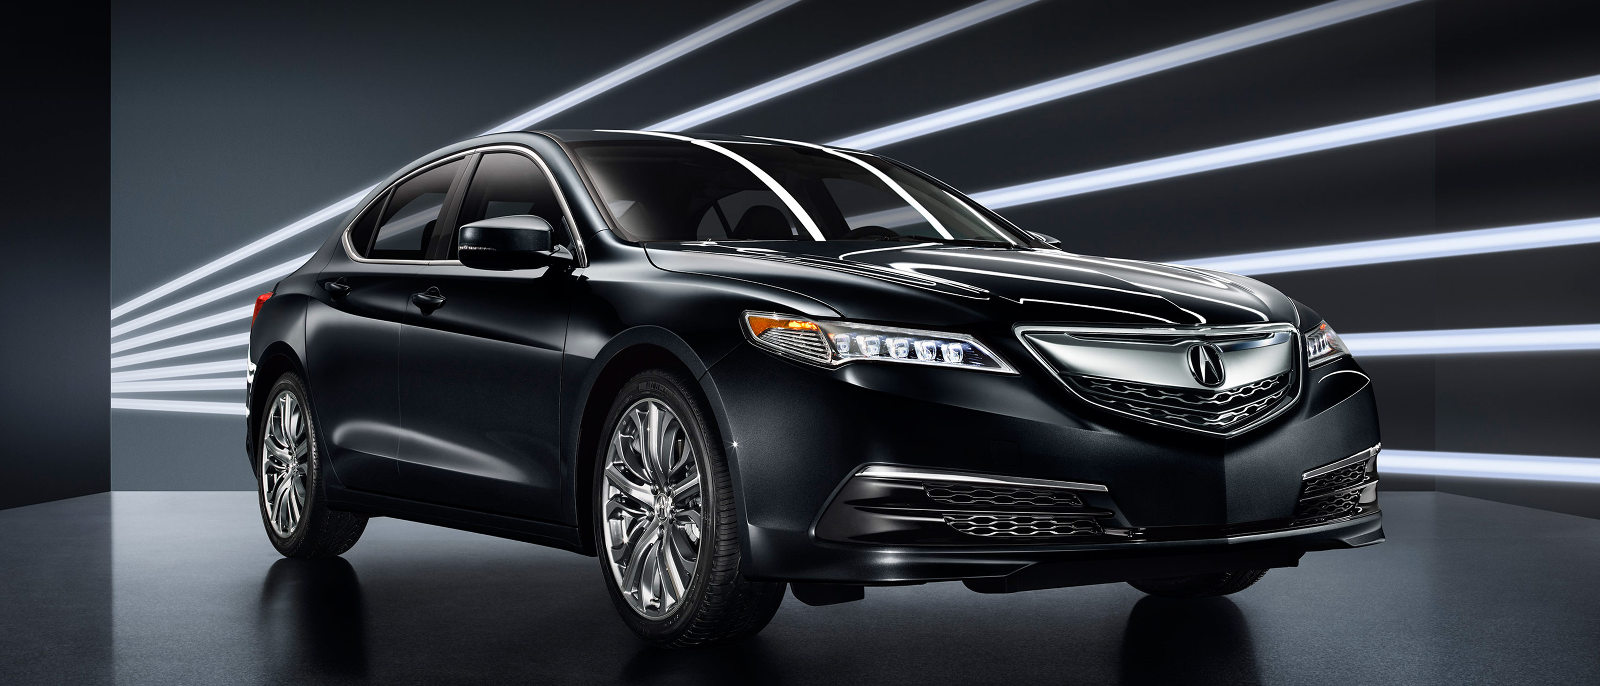 staten autoleasing brooklyn dealer acura acurardx york island leasing car inventory statenisland new rdx